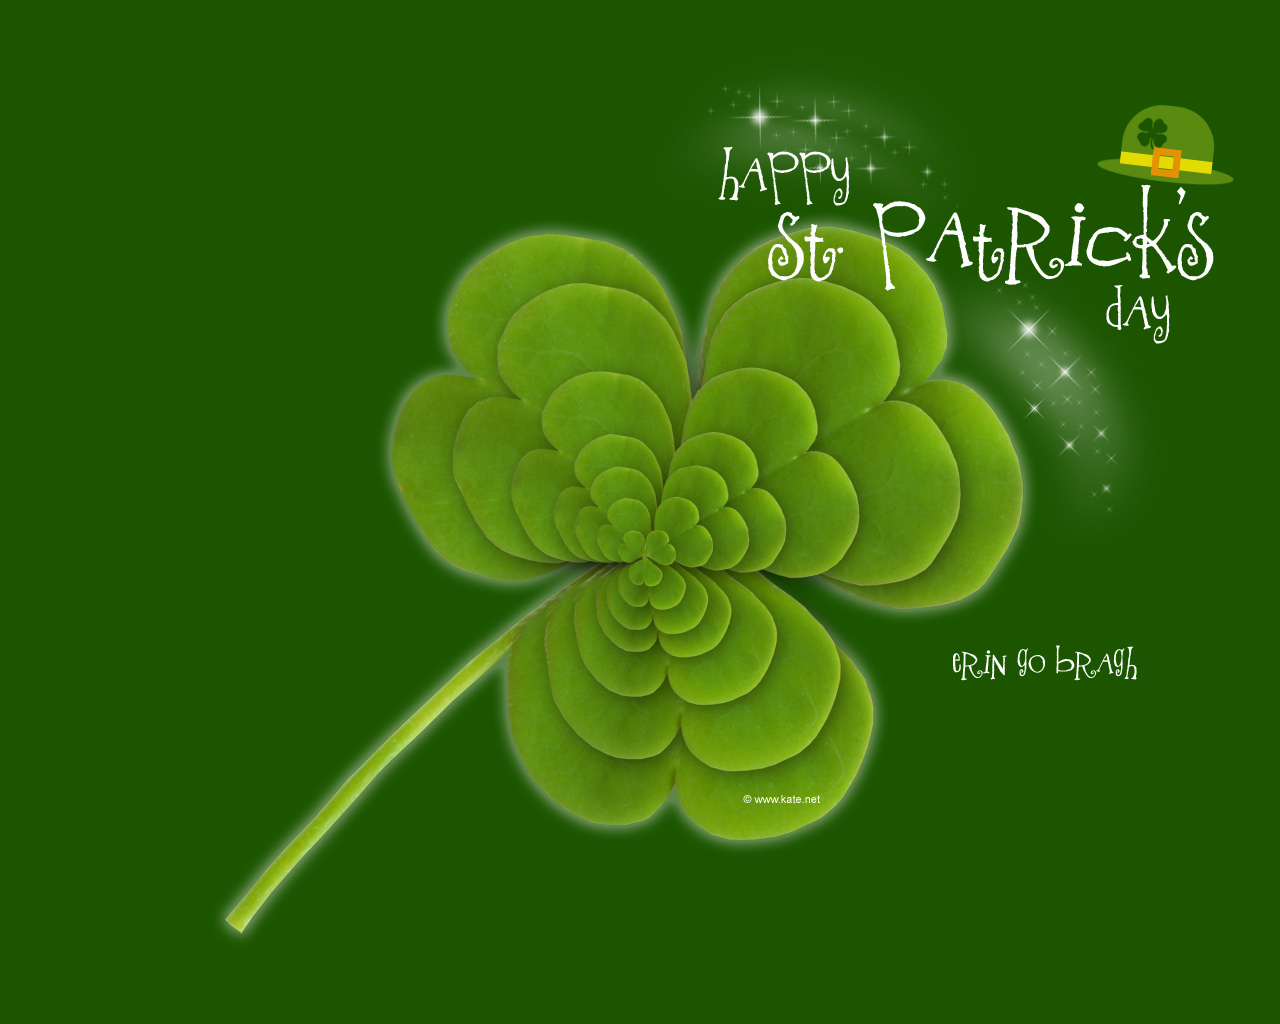 St Patricks Day Wallpapers by Katenet 1280x1024